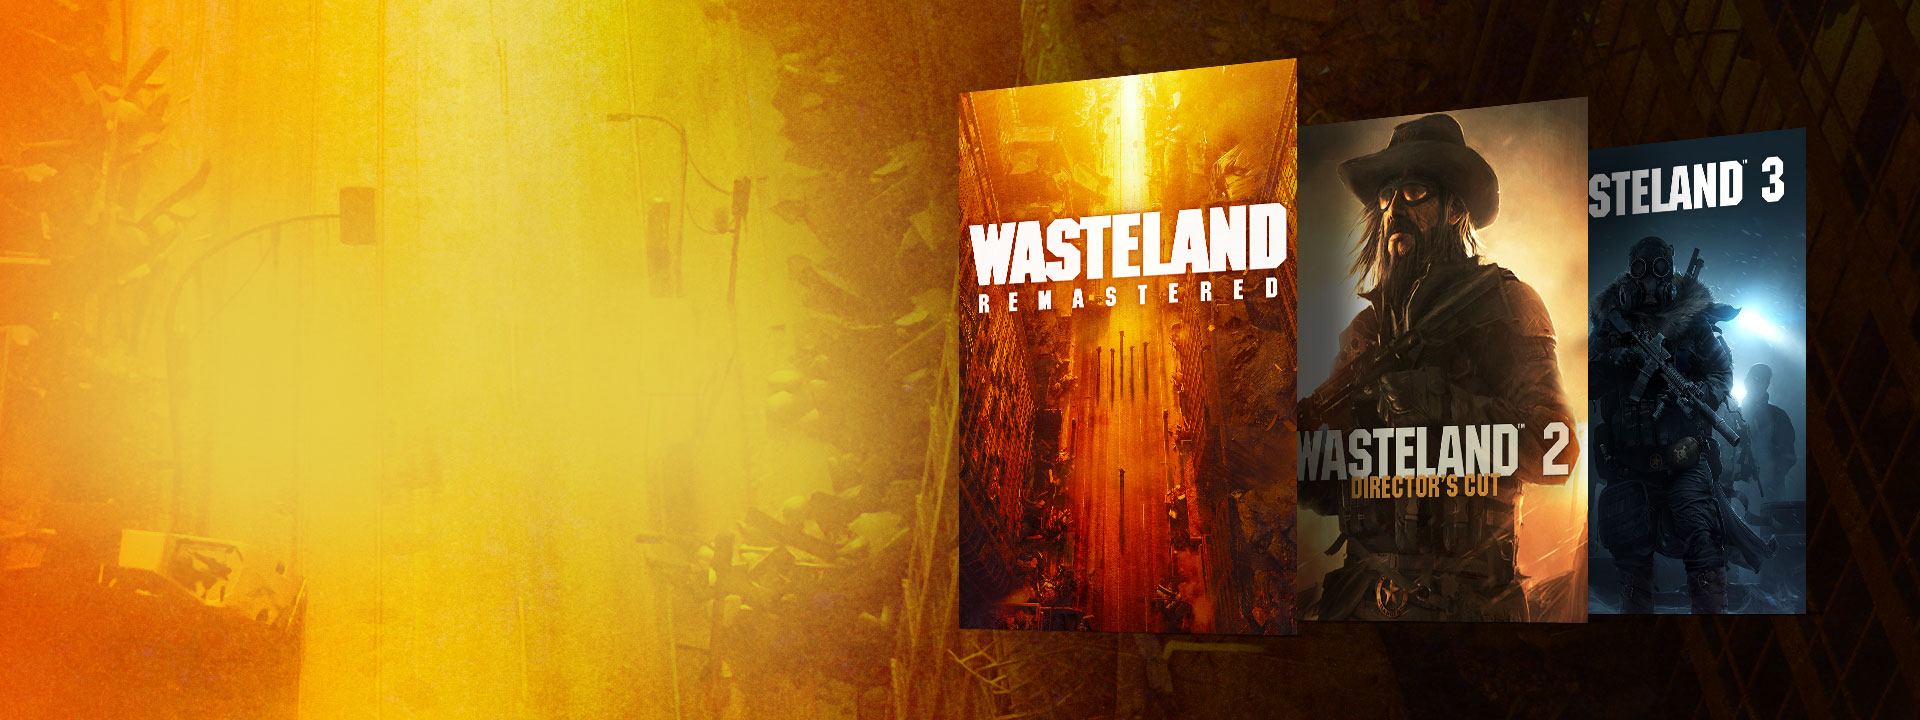 Boxshots of Wasteland Remastered, Wasteland 2 Director's Cut and Wasteland 3. A background of an abandoned street with yellow and orange hues